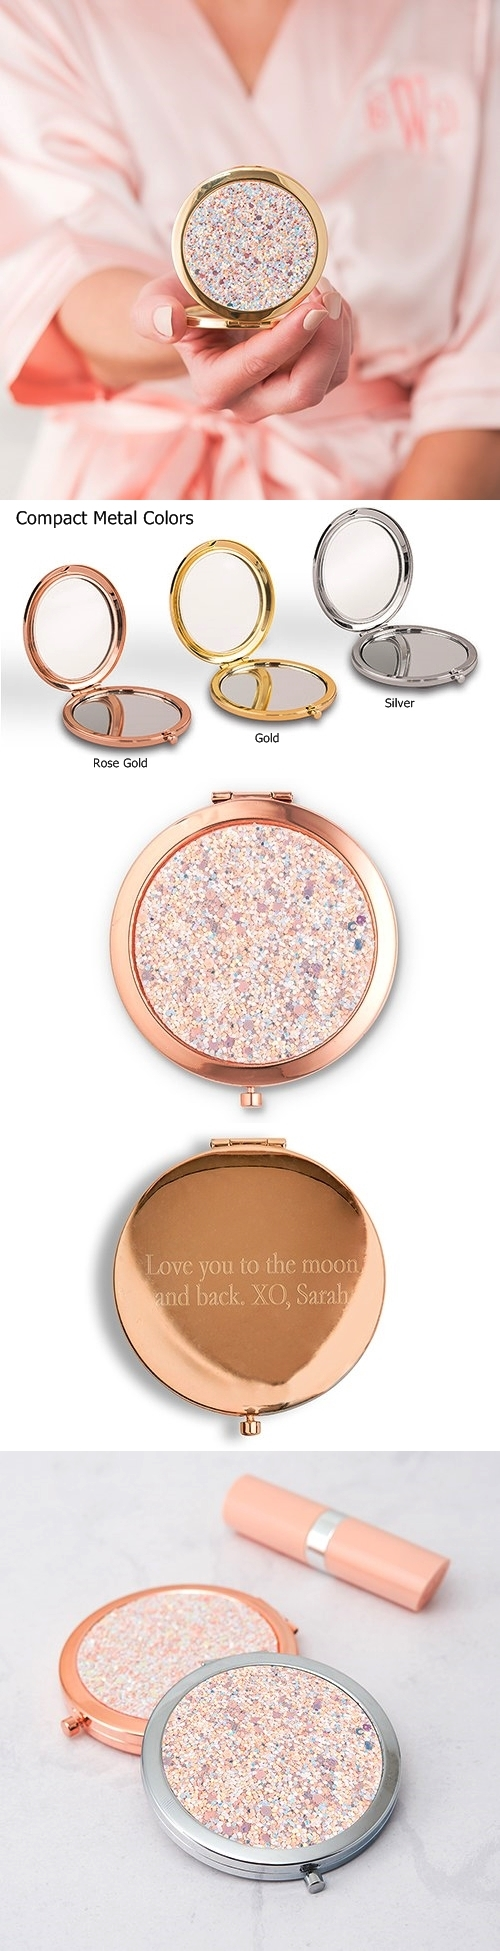 23d8ca3215 Weddingstar Personalizable Rose-Gold-Glitter Compact Mirror (3 Colors)